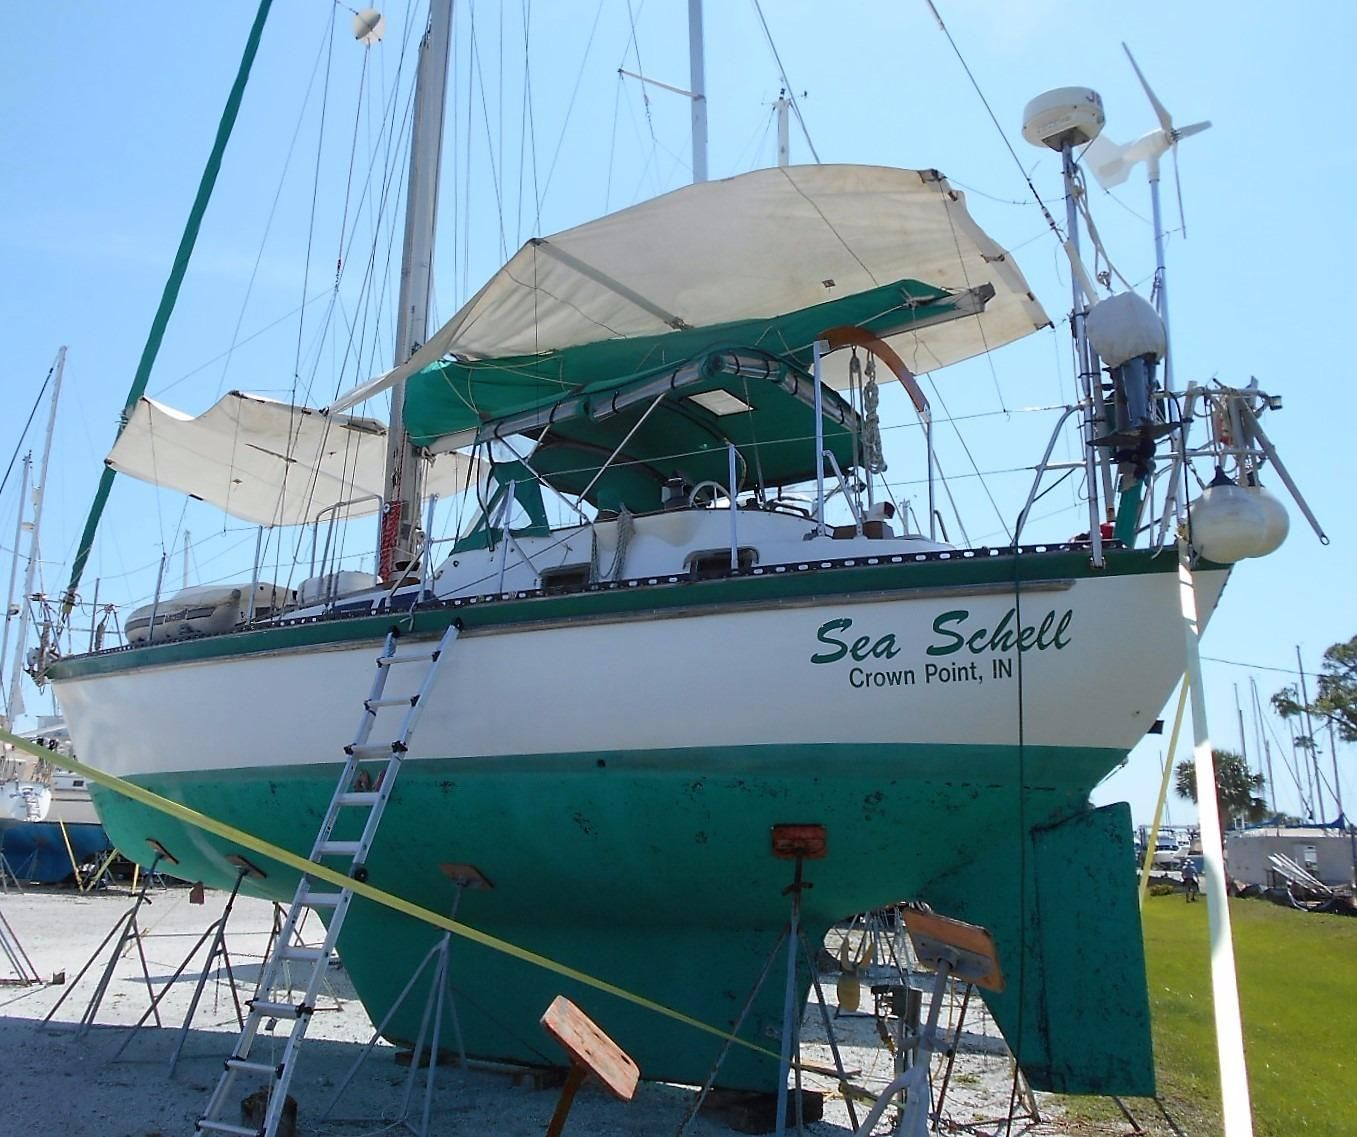 Used Car Dealerships In Port Charlotte Fl: 1981 Tayana Vancouver 42 CC Sail New And Used Boats For Sale